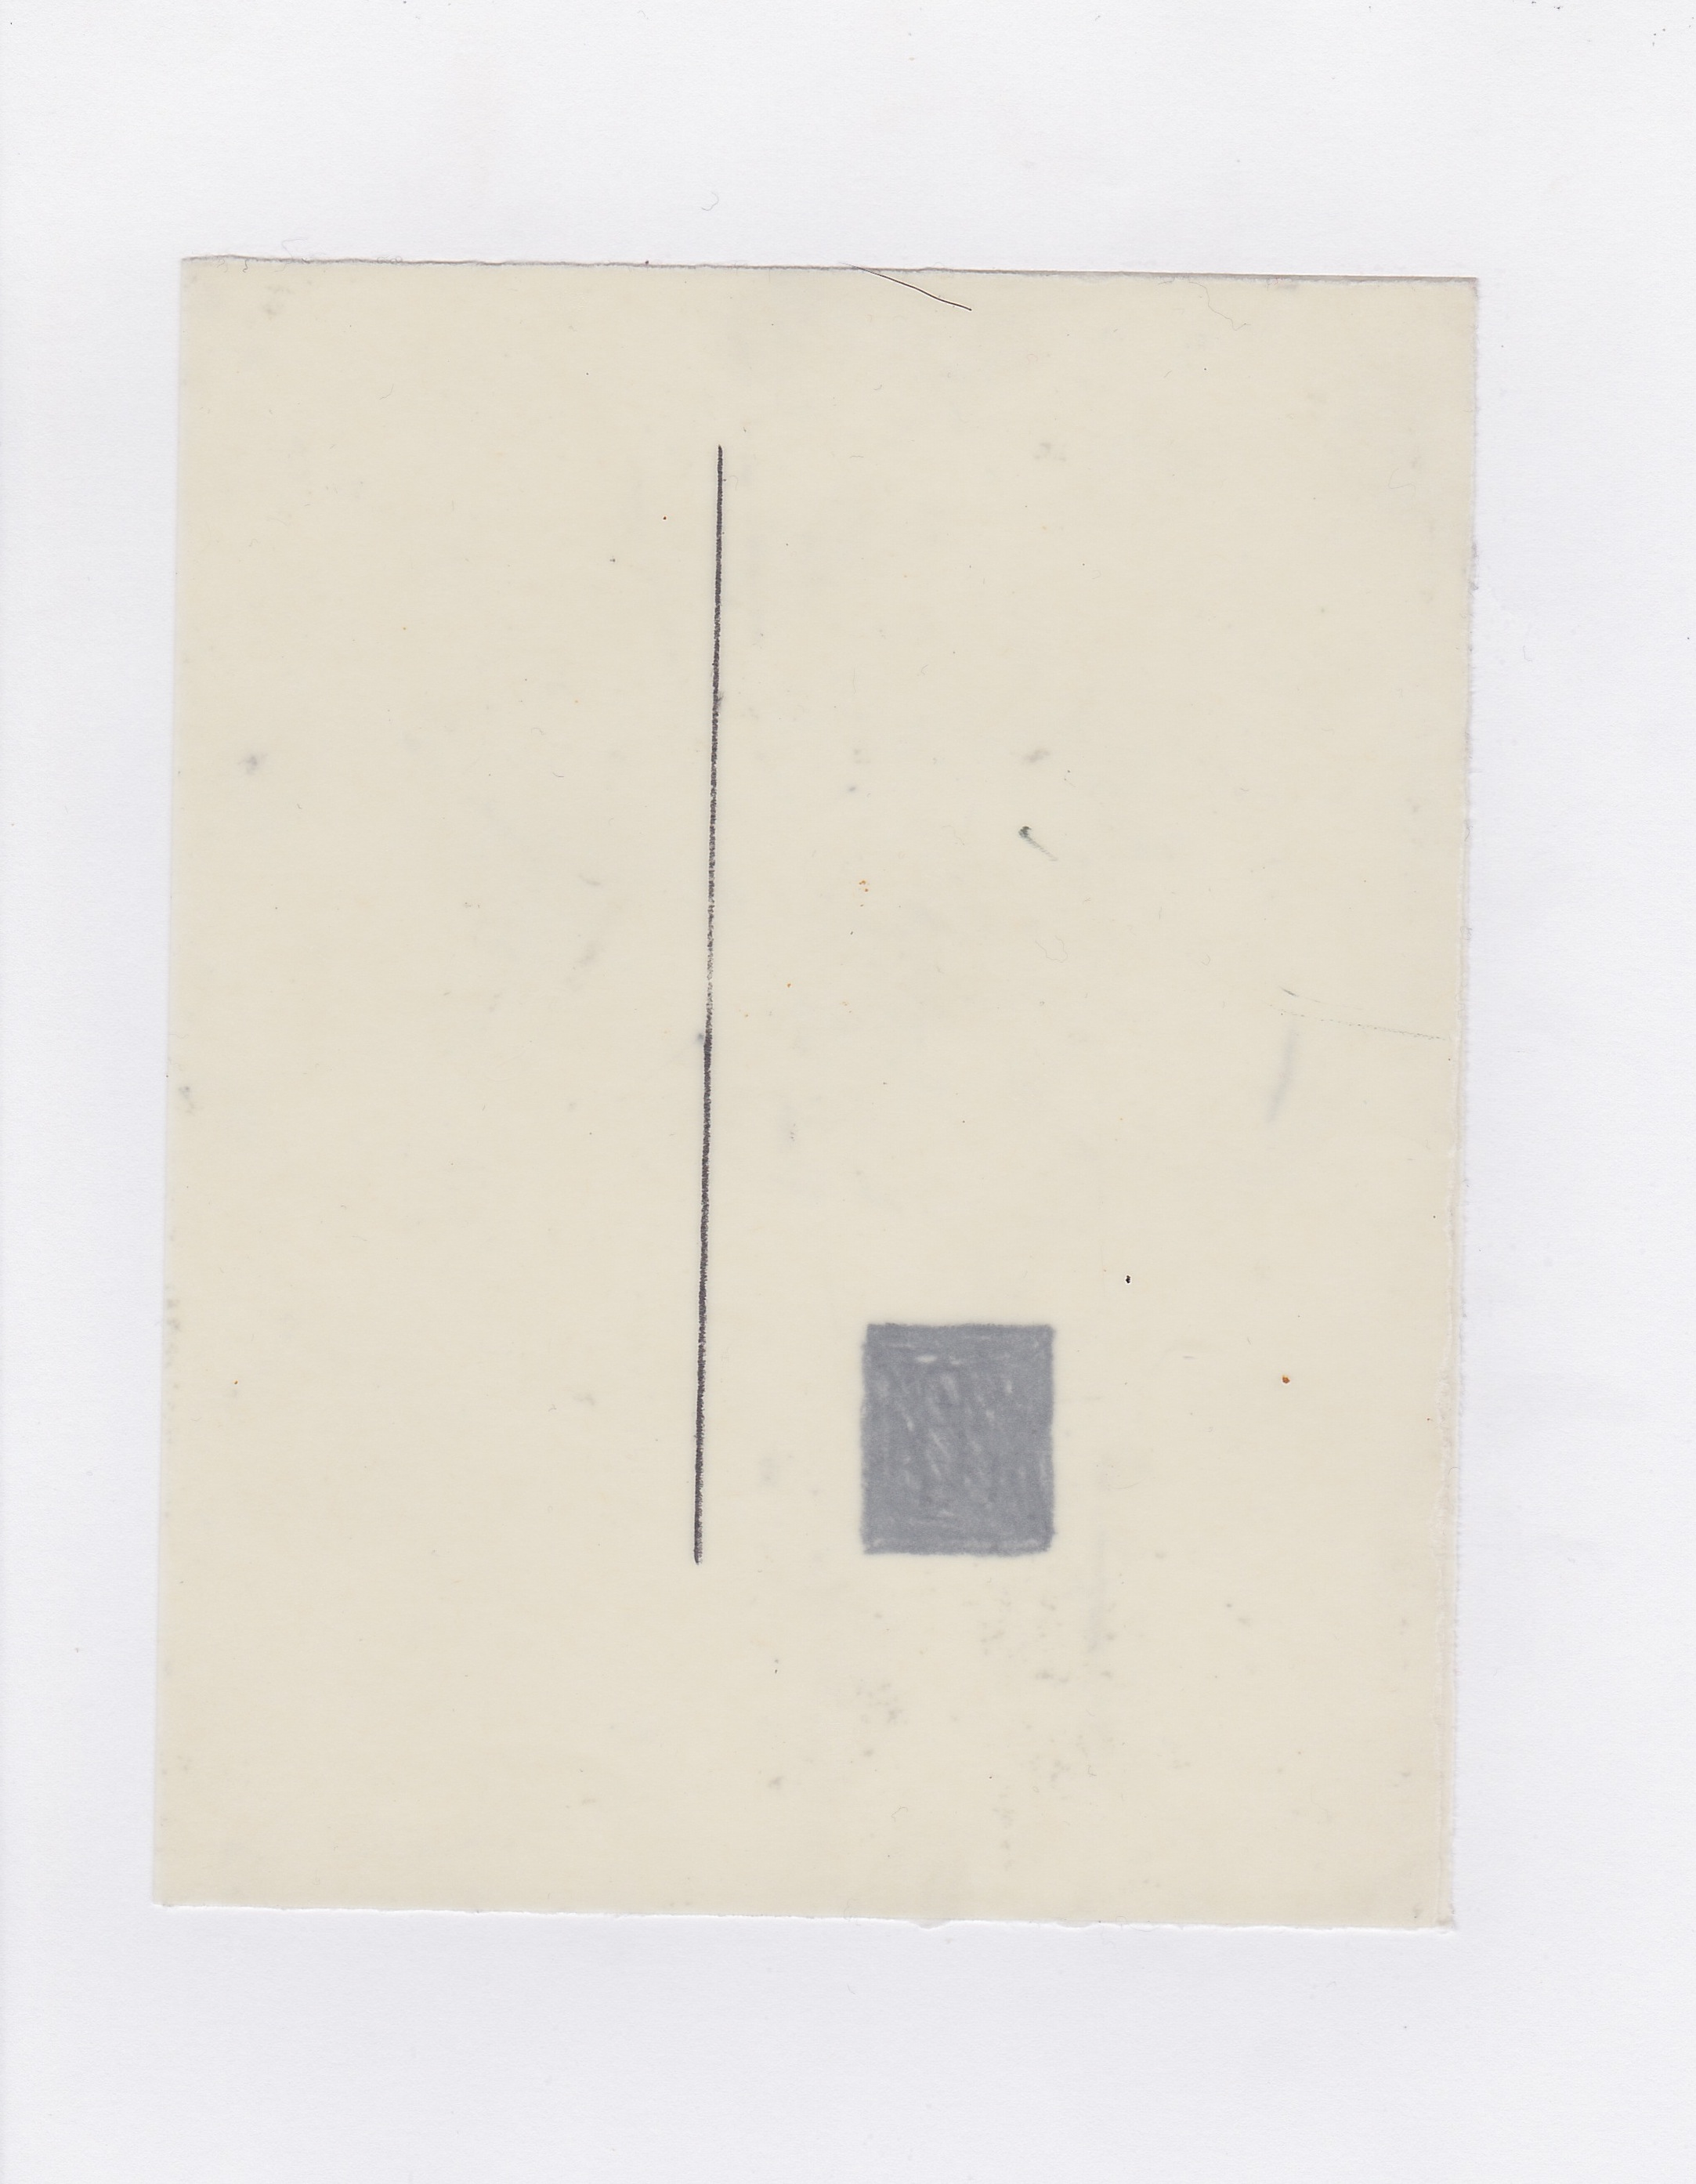 Untitled (the city, observations 15A)  Pencil on oiled fabriano paper. (15B)  140mm x 180mm  December 2013